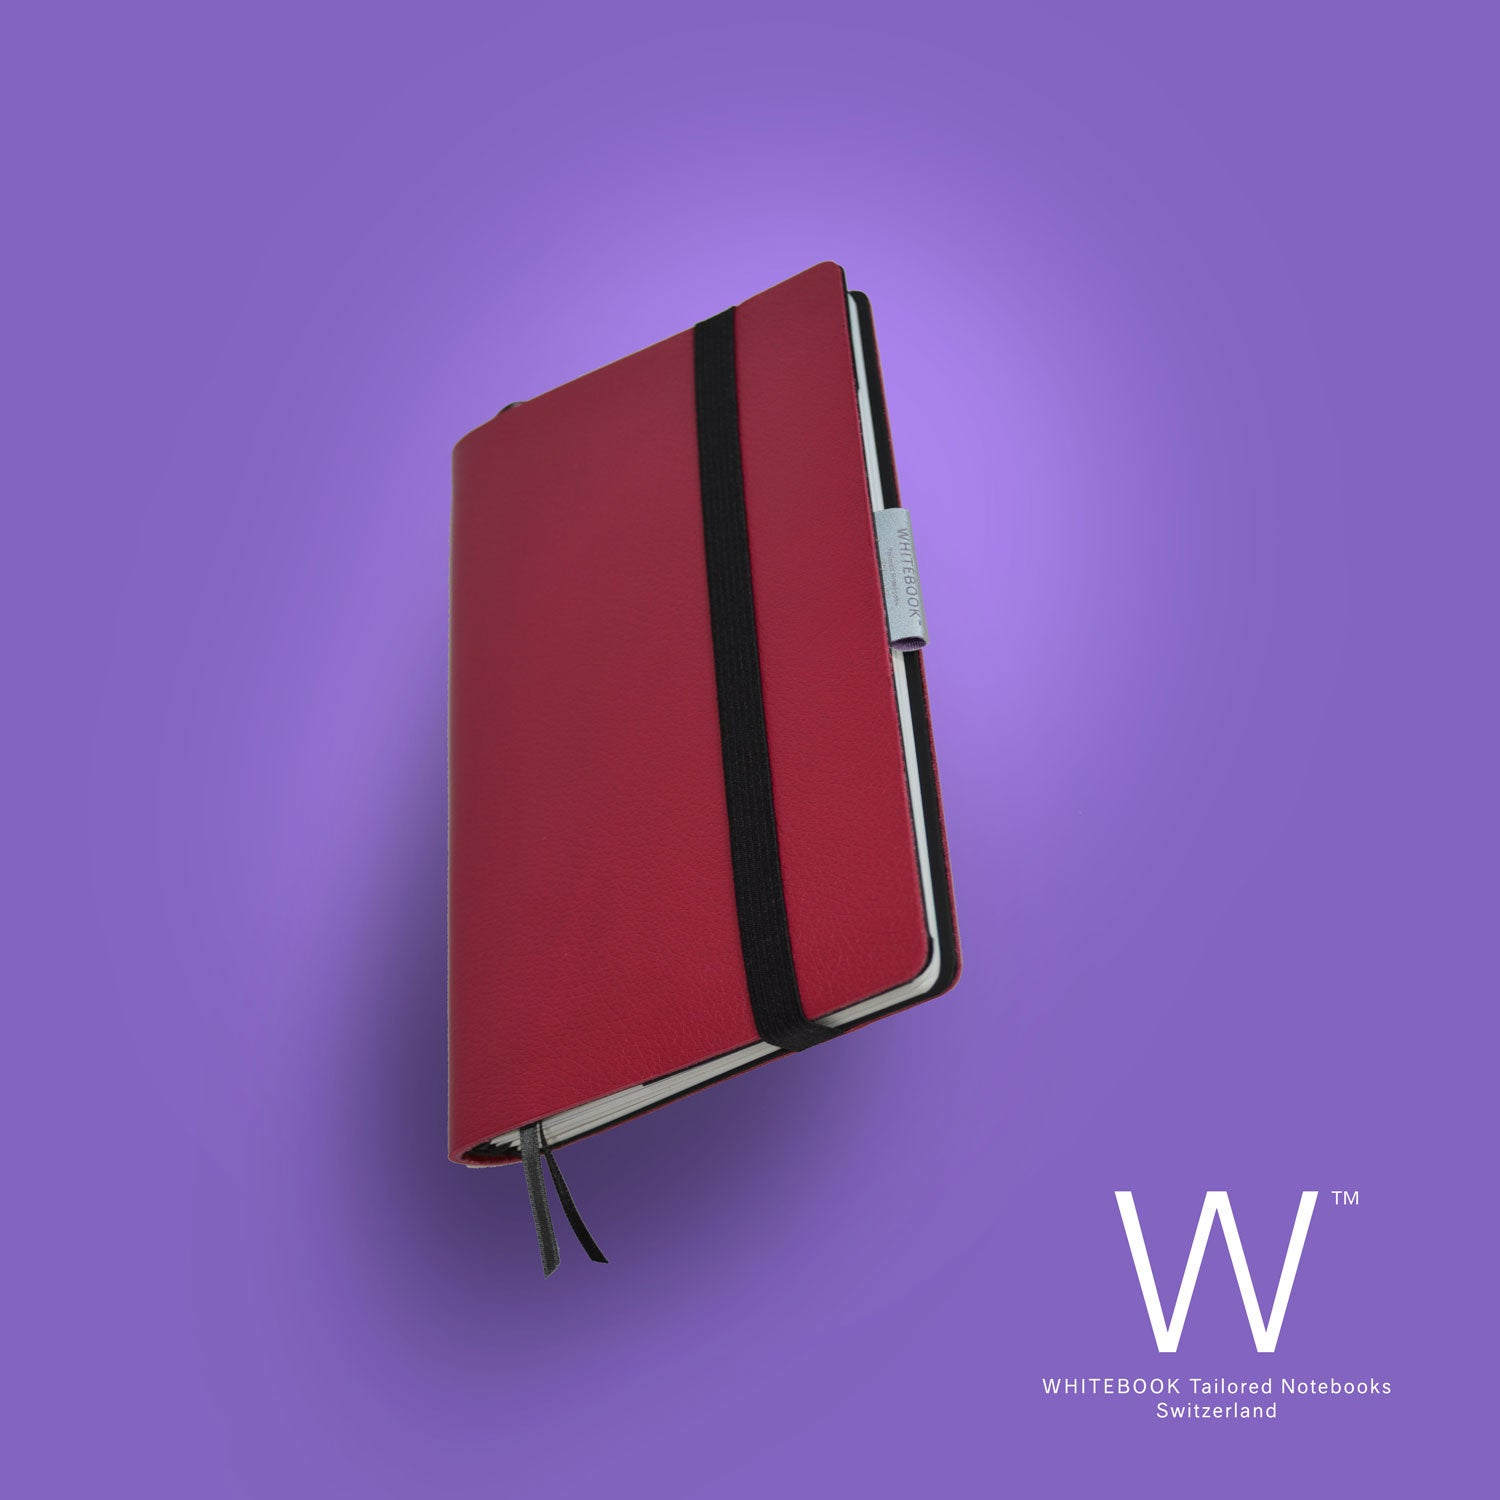 Image of Whitebook Mobile, S213, soft french calf leather, Togo Rubis